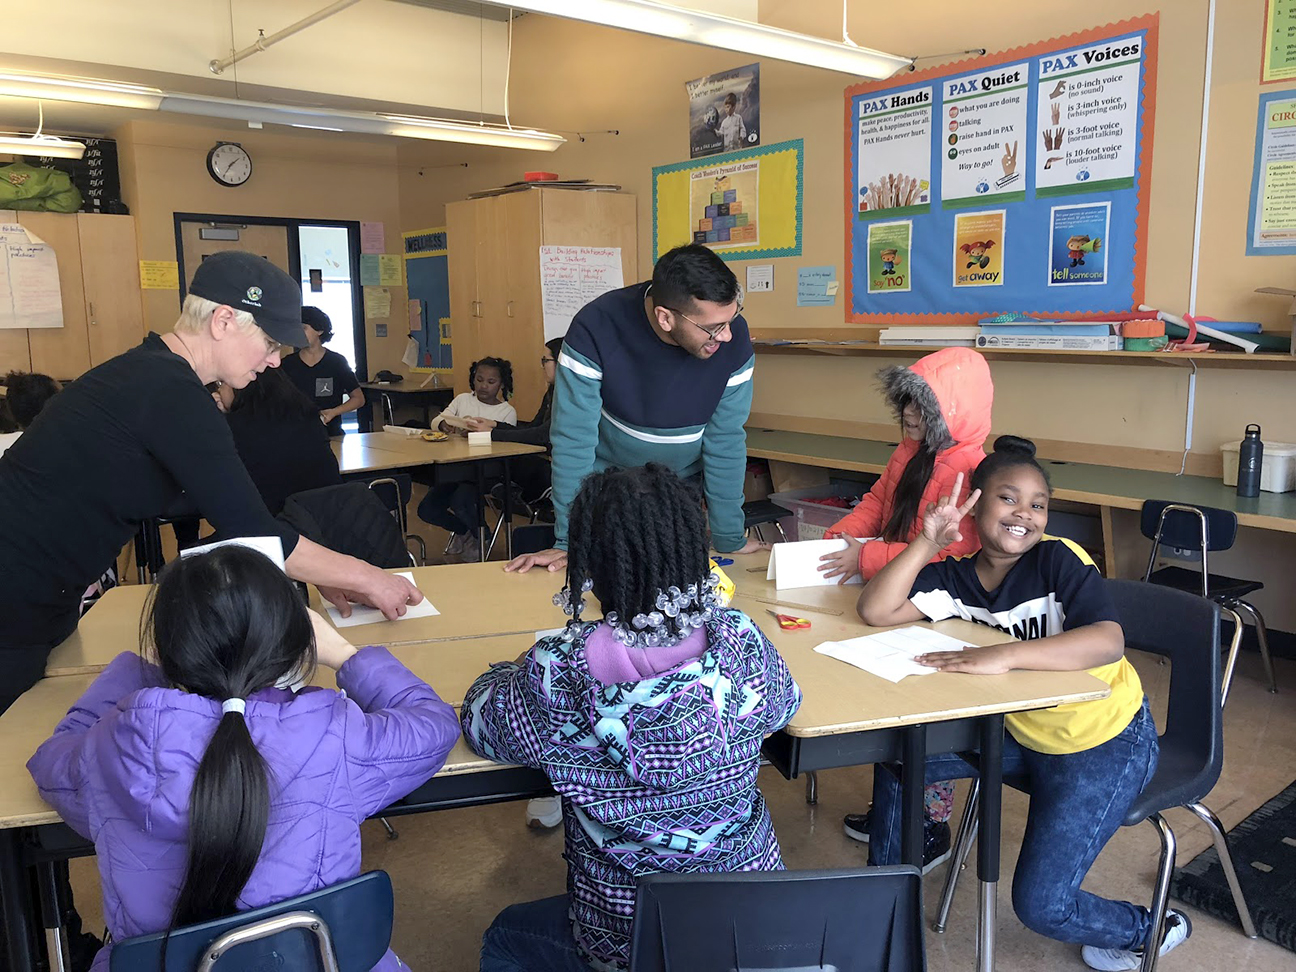 Mr. Eddie and Ms. Nan assisting students in the bookmaking process.